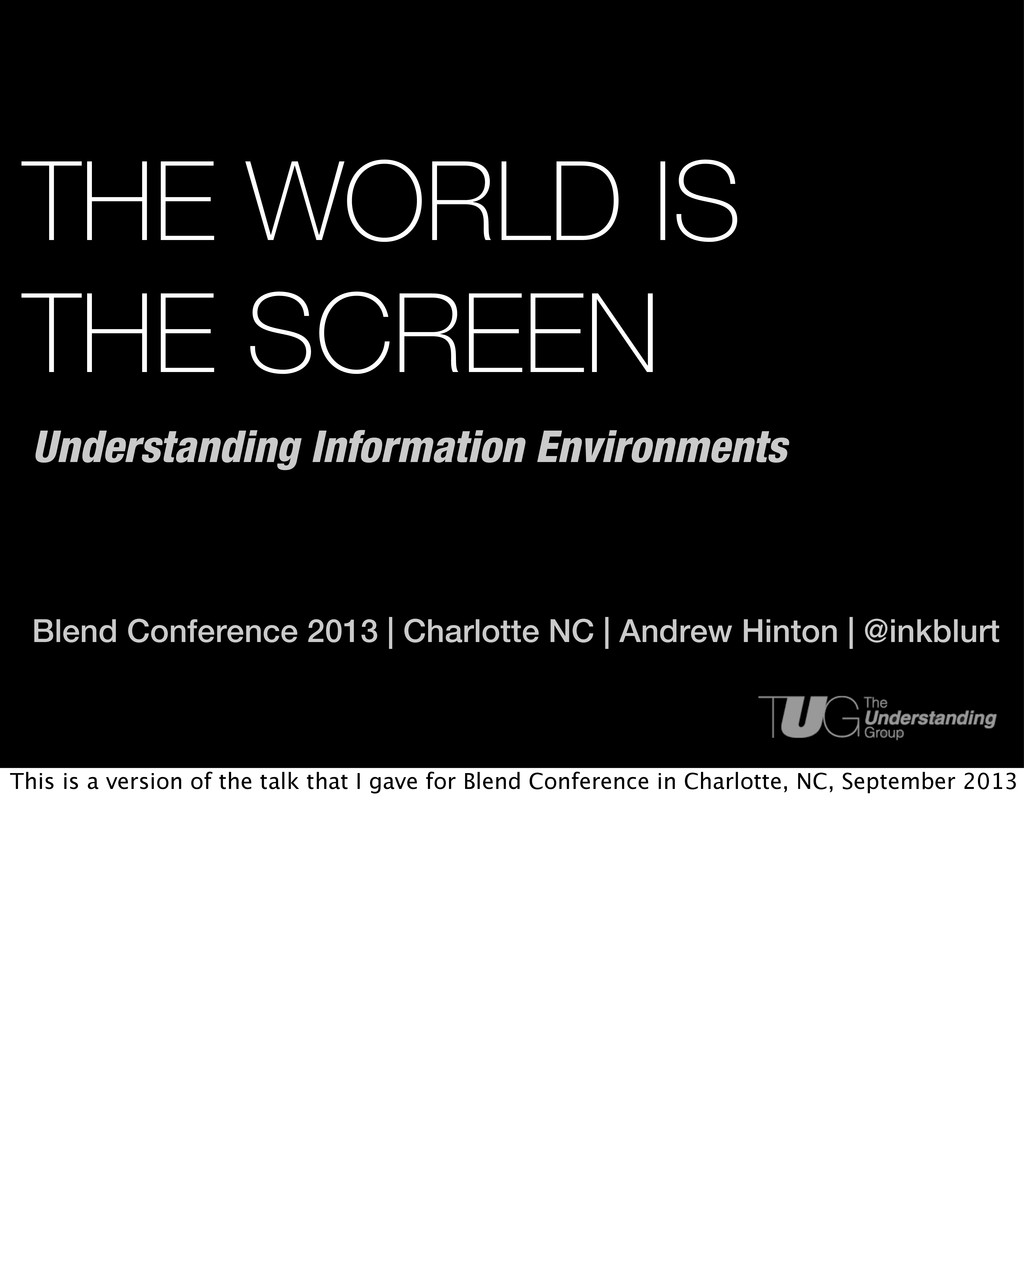 THE WORLD IS THE SCREEN Blend Conference 2013 |...